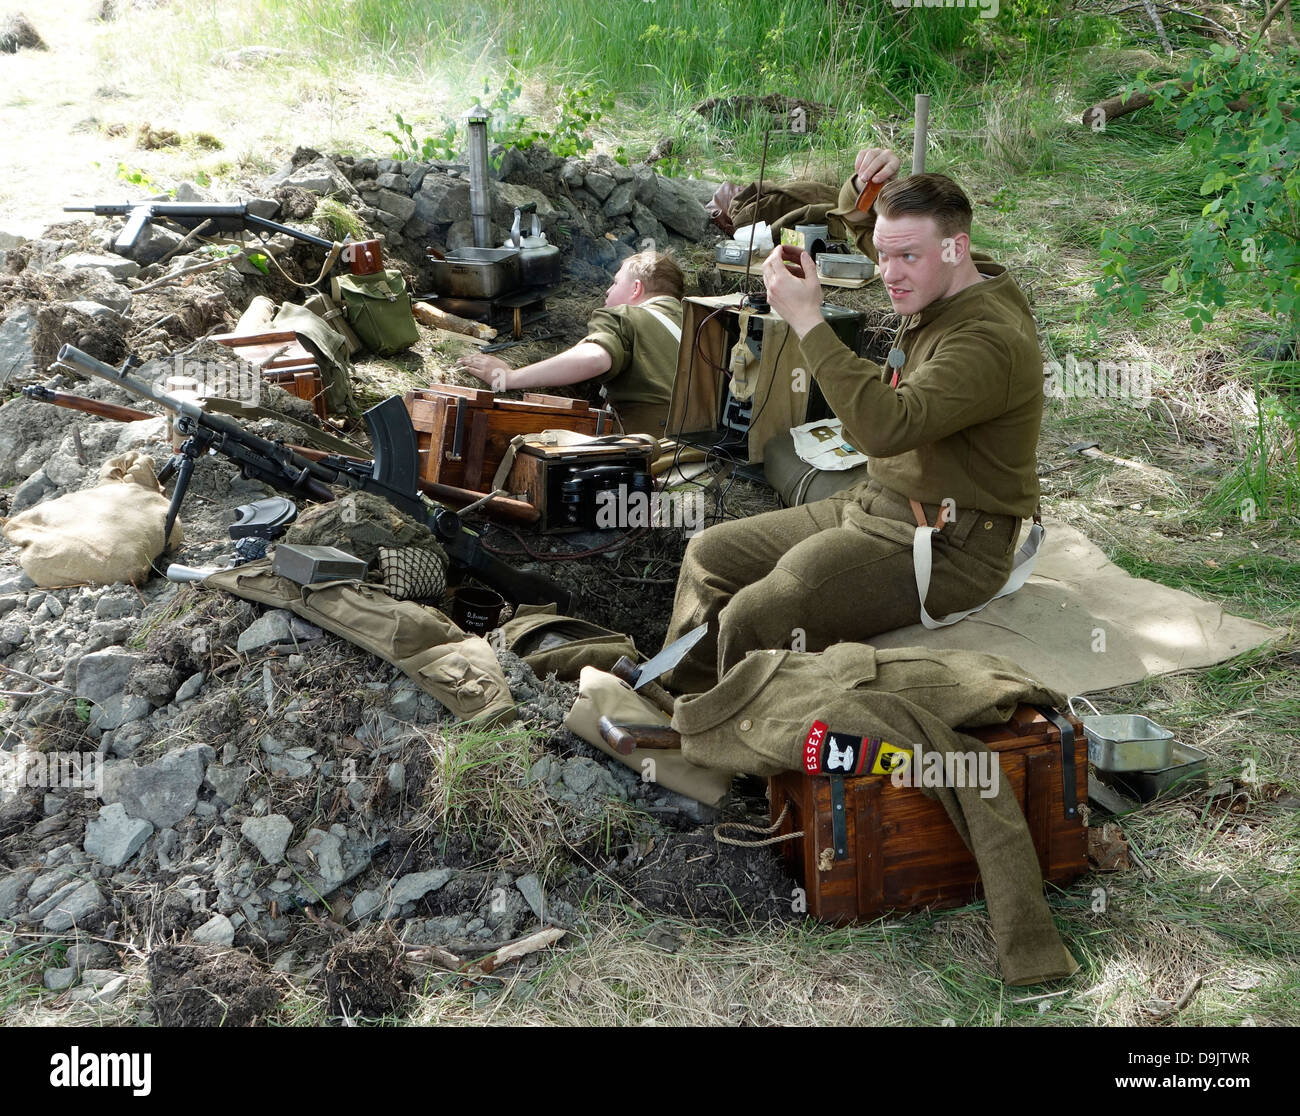 Historical re-enactment of ww2. British soldier sits in the trench and finds time to comb his hair . - Stock Image